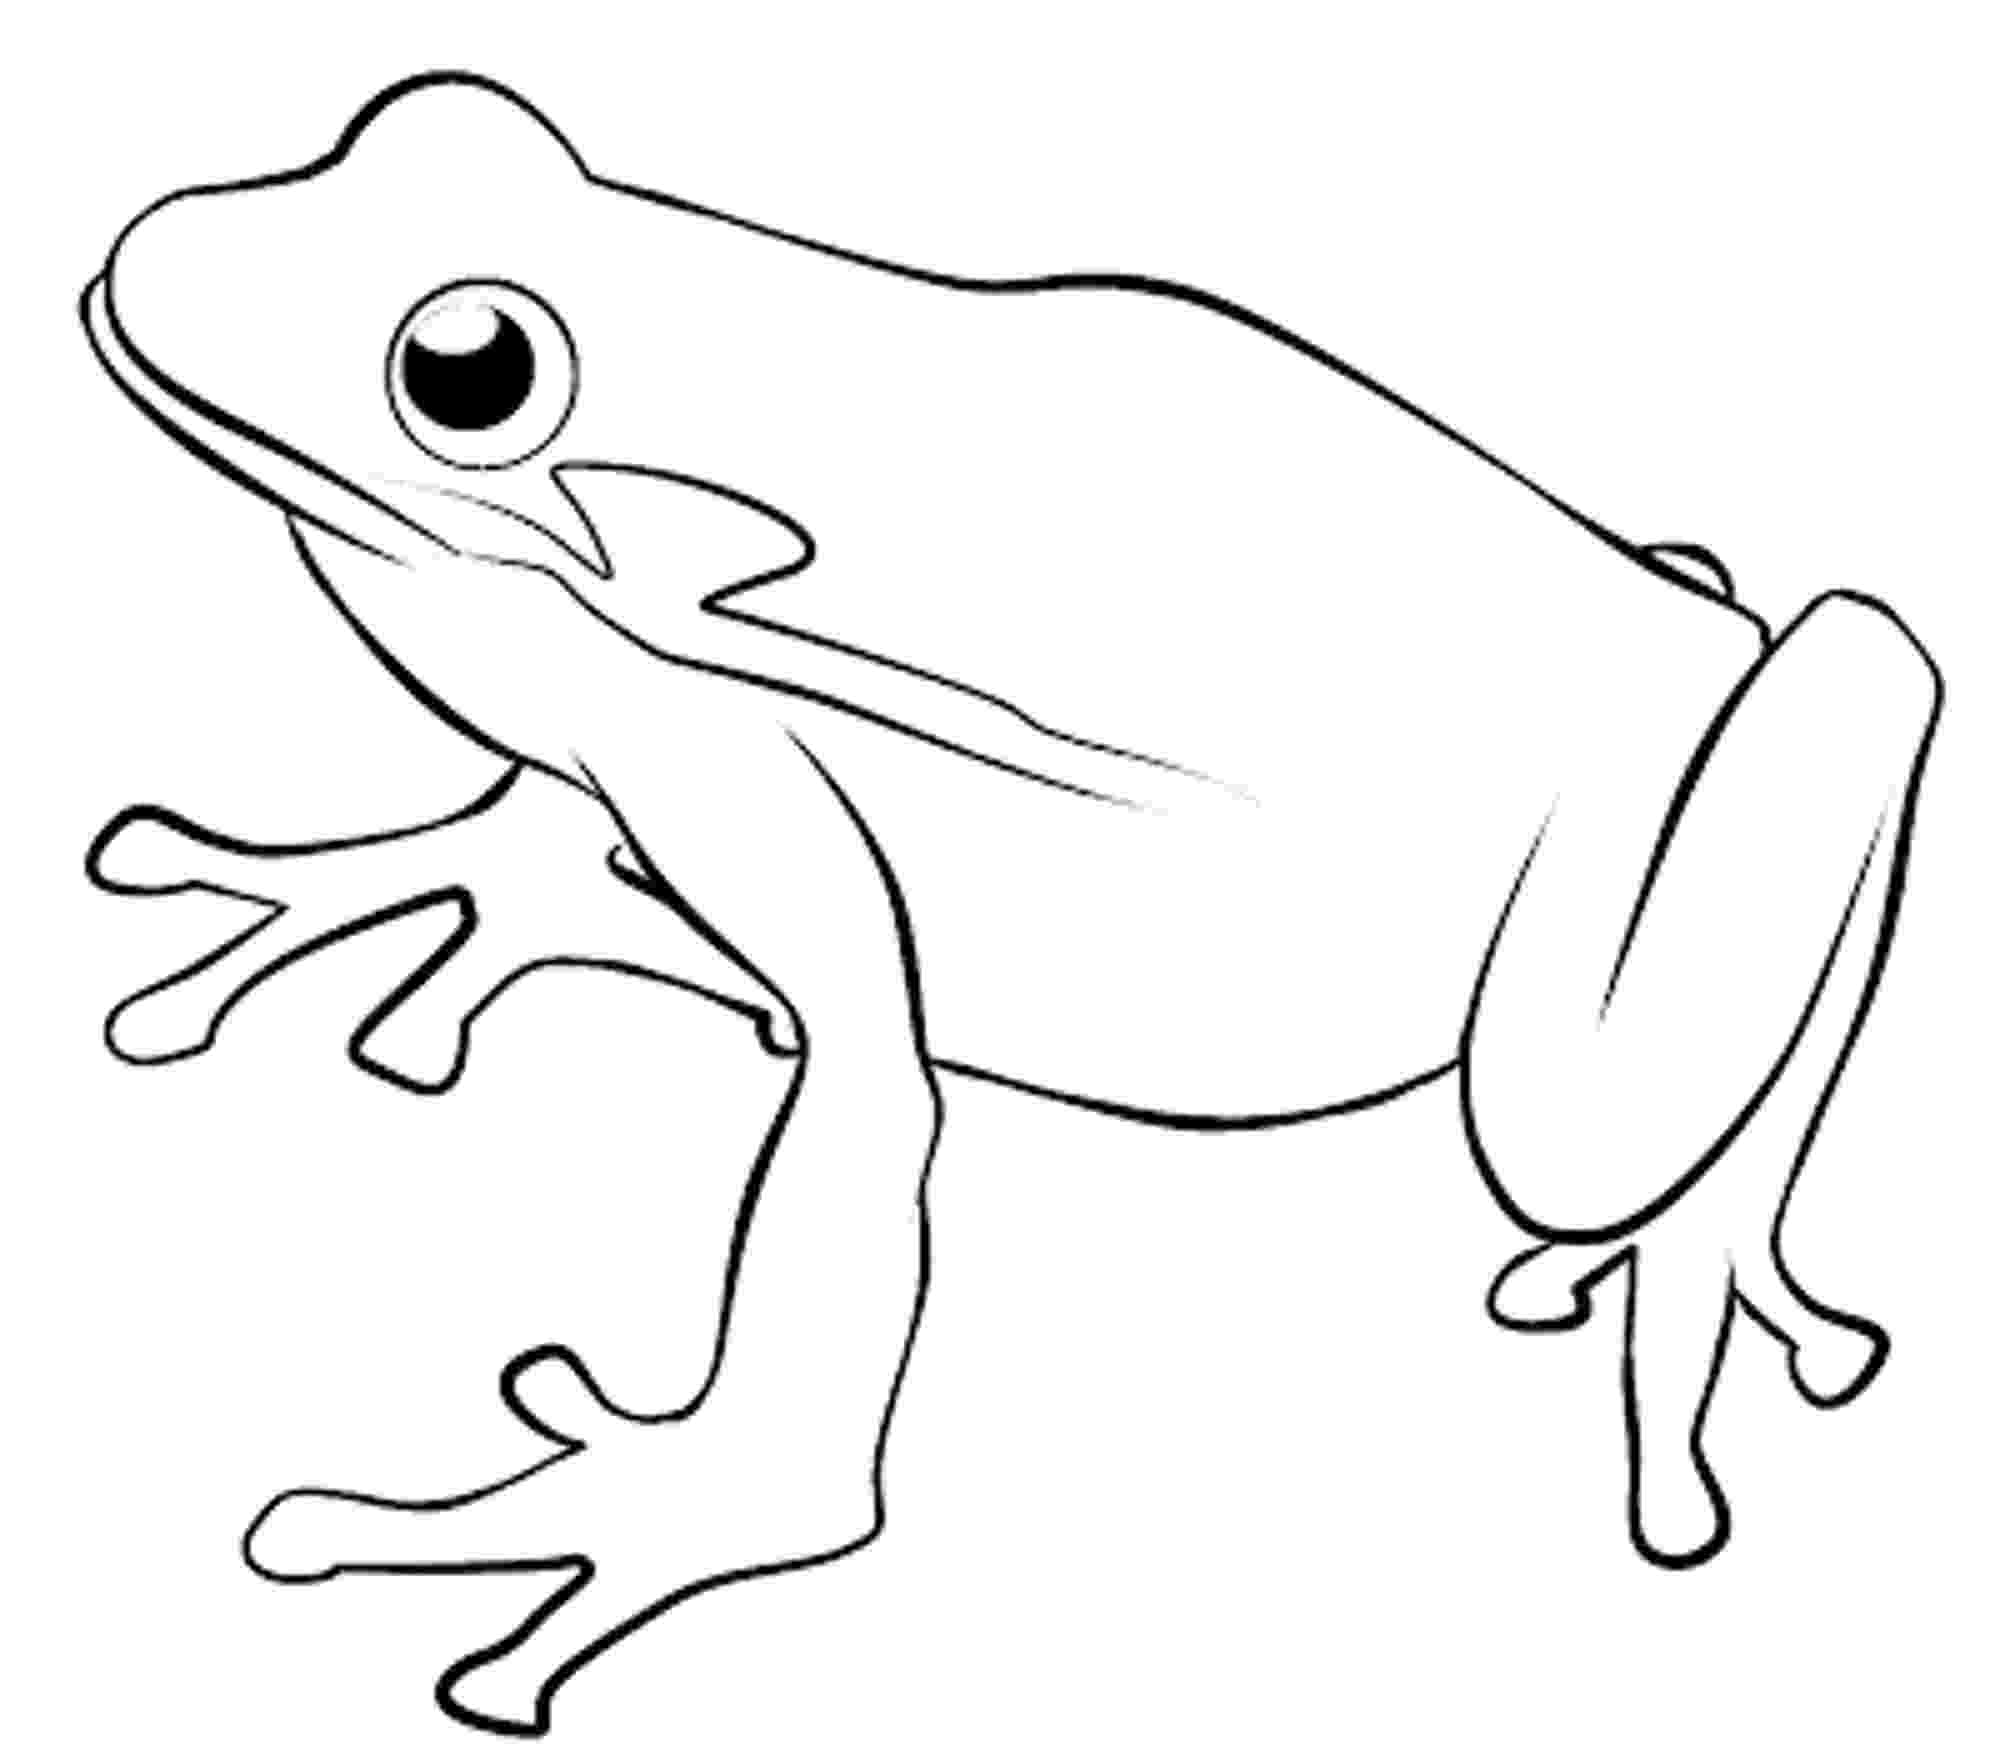 frog images to color frog color page animal coloring pages color plate frog images to color